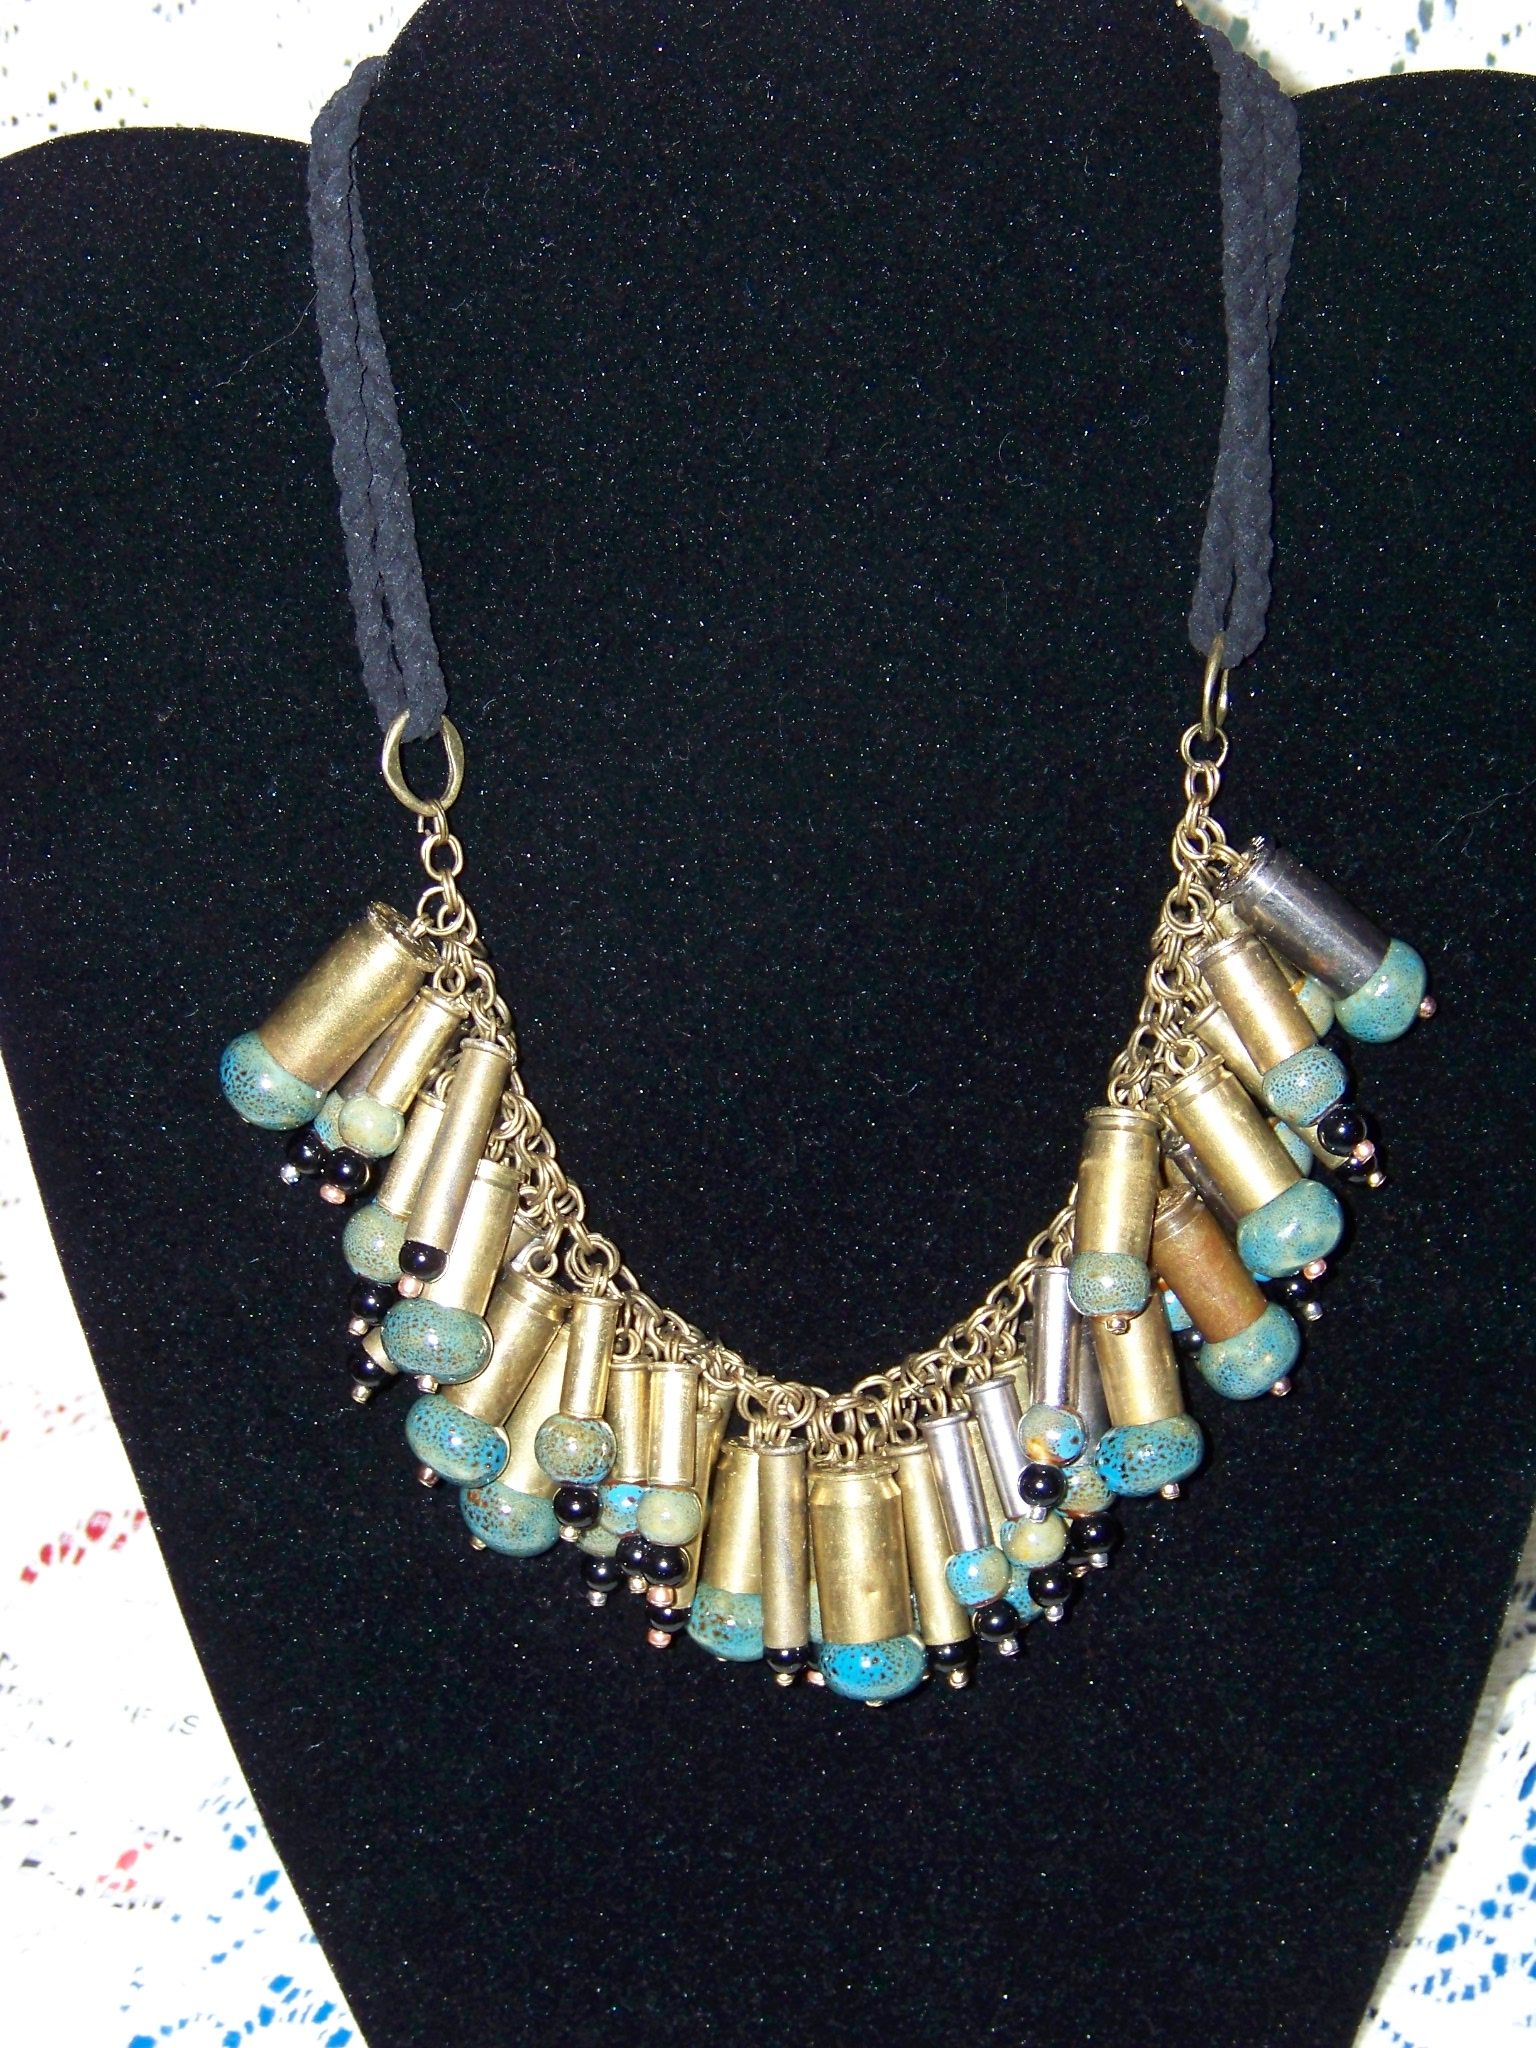 bullet shell necklace I made for a friend